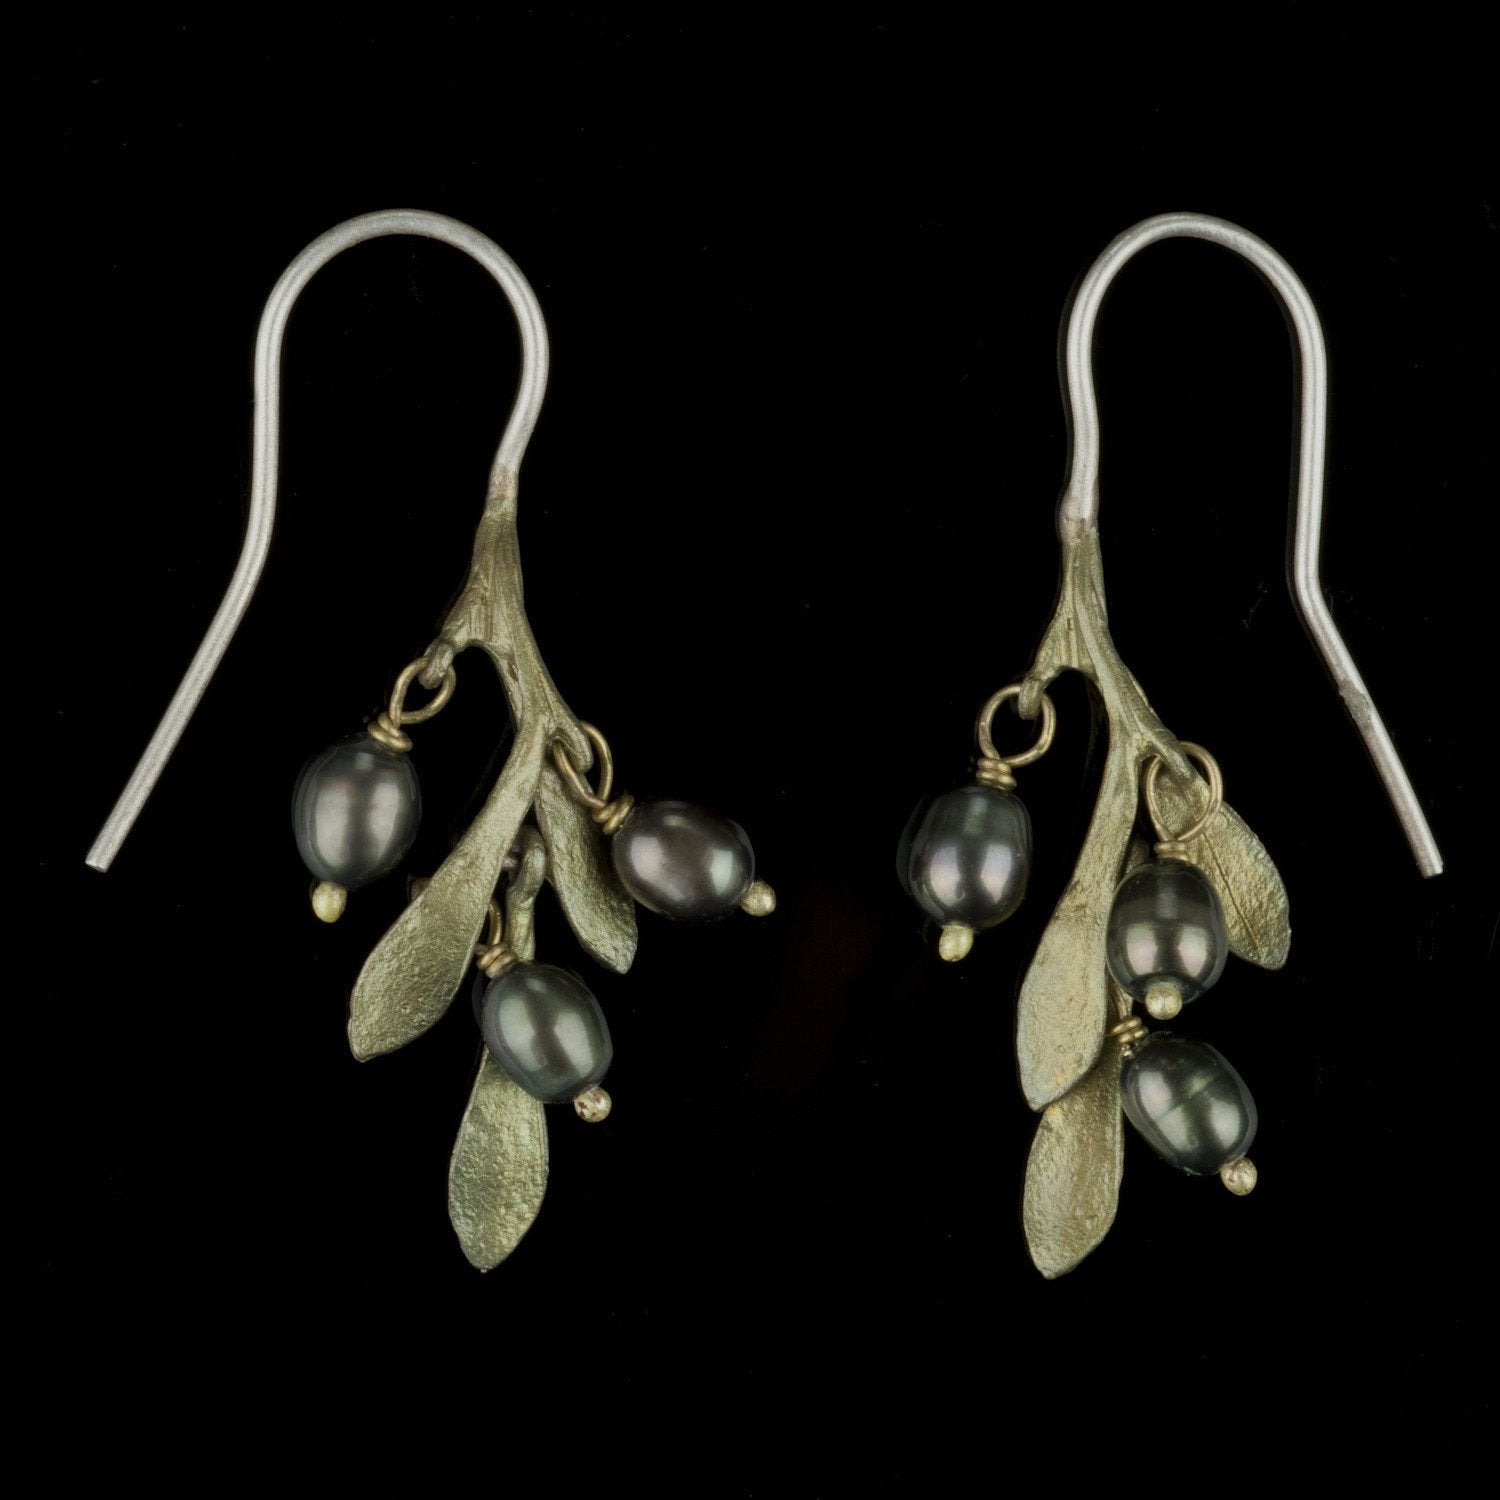 Olive Earrings - Delicate Wire Drop